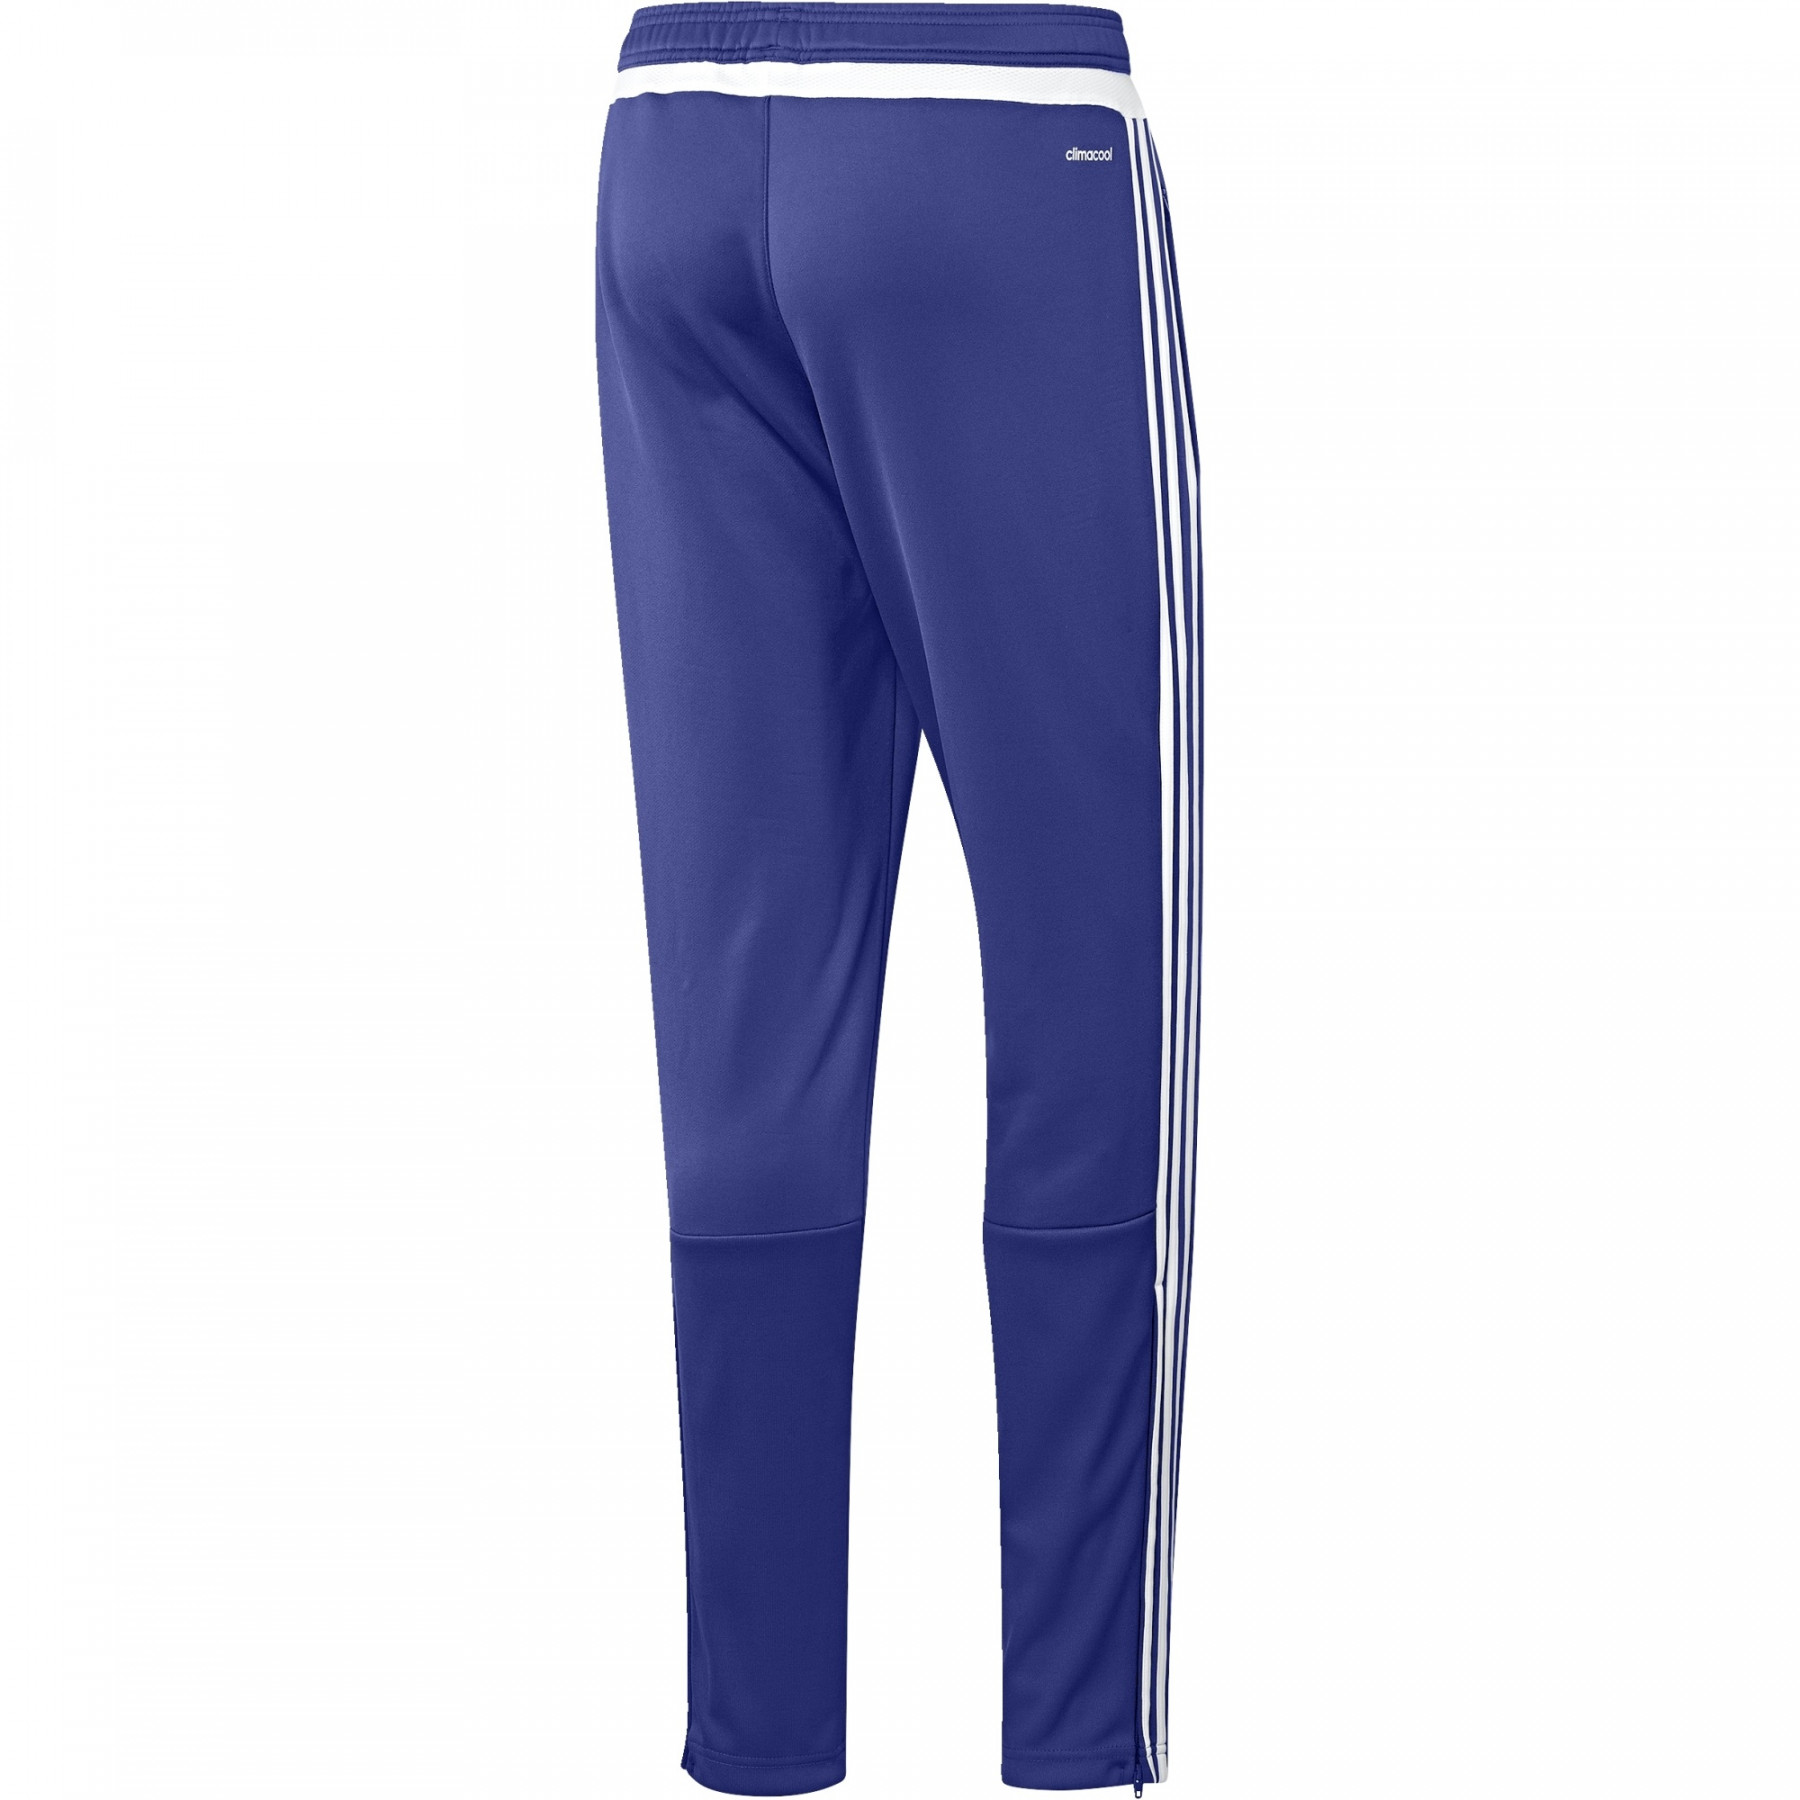 ADIDAS CHELSEA TRAINING PANT JR 20152016 Pantalon